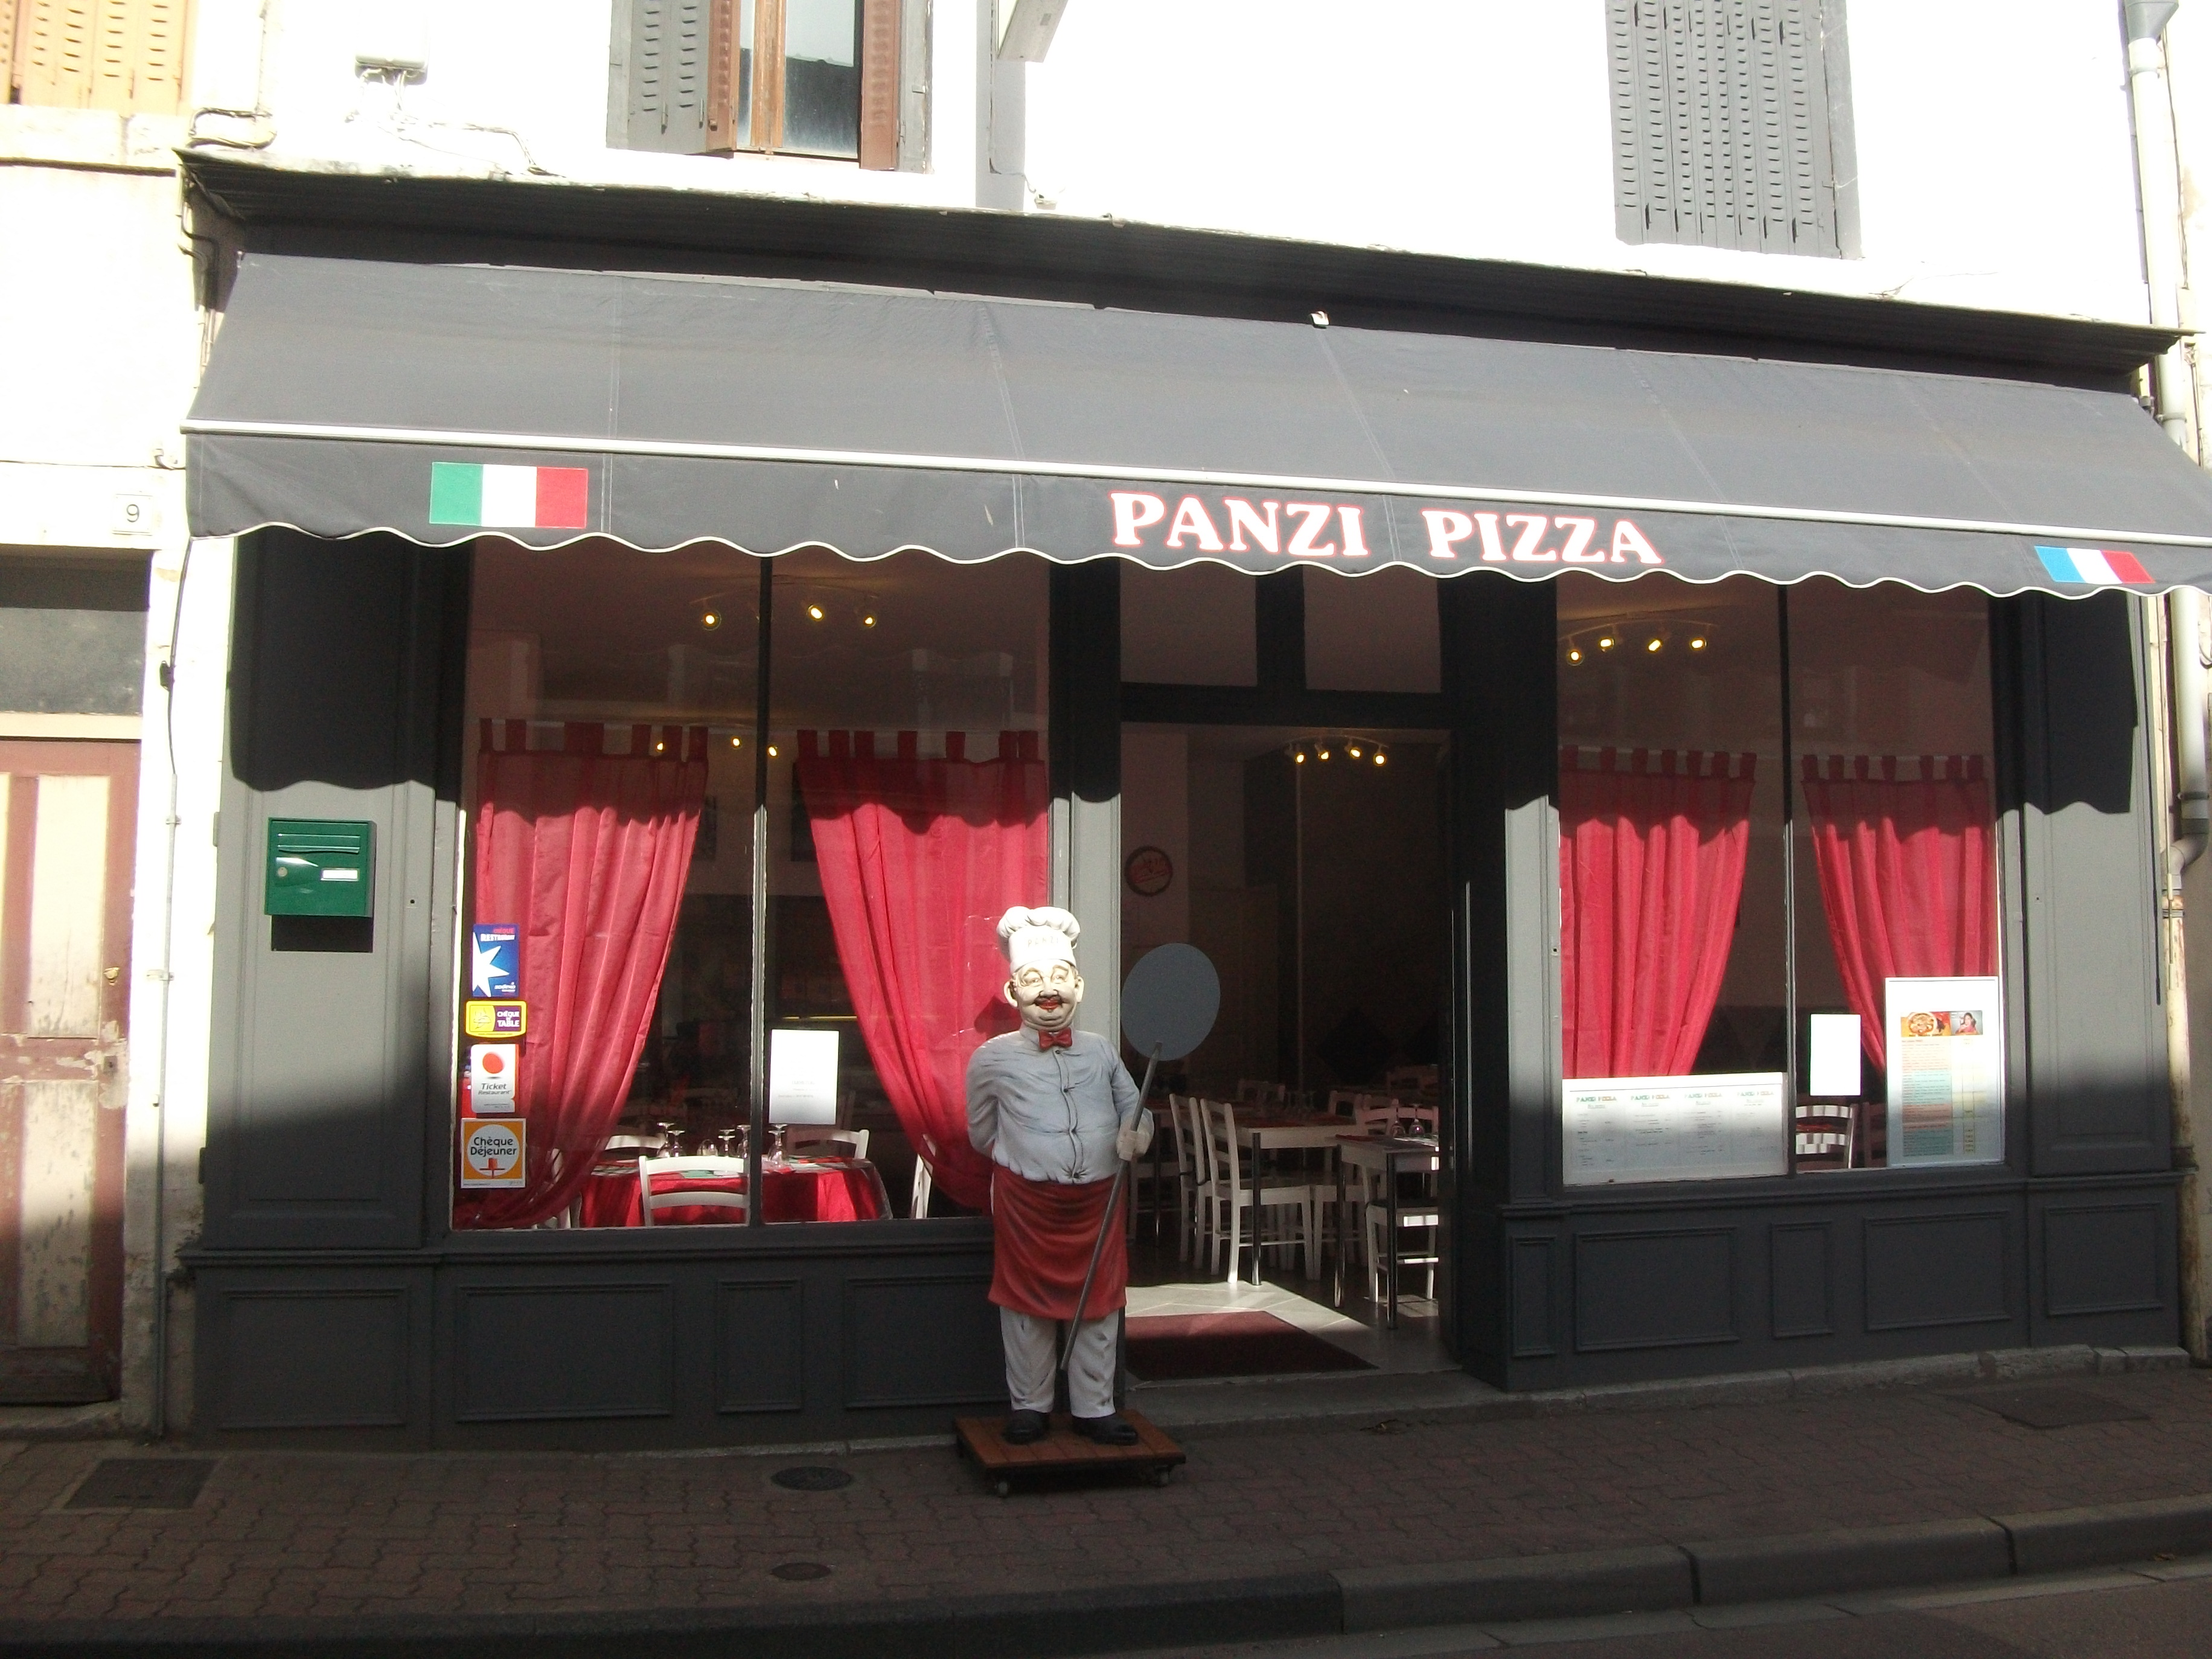 Panzi Pizza